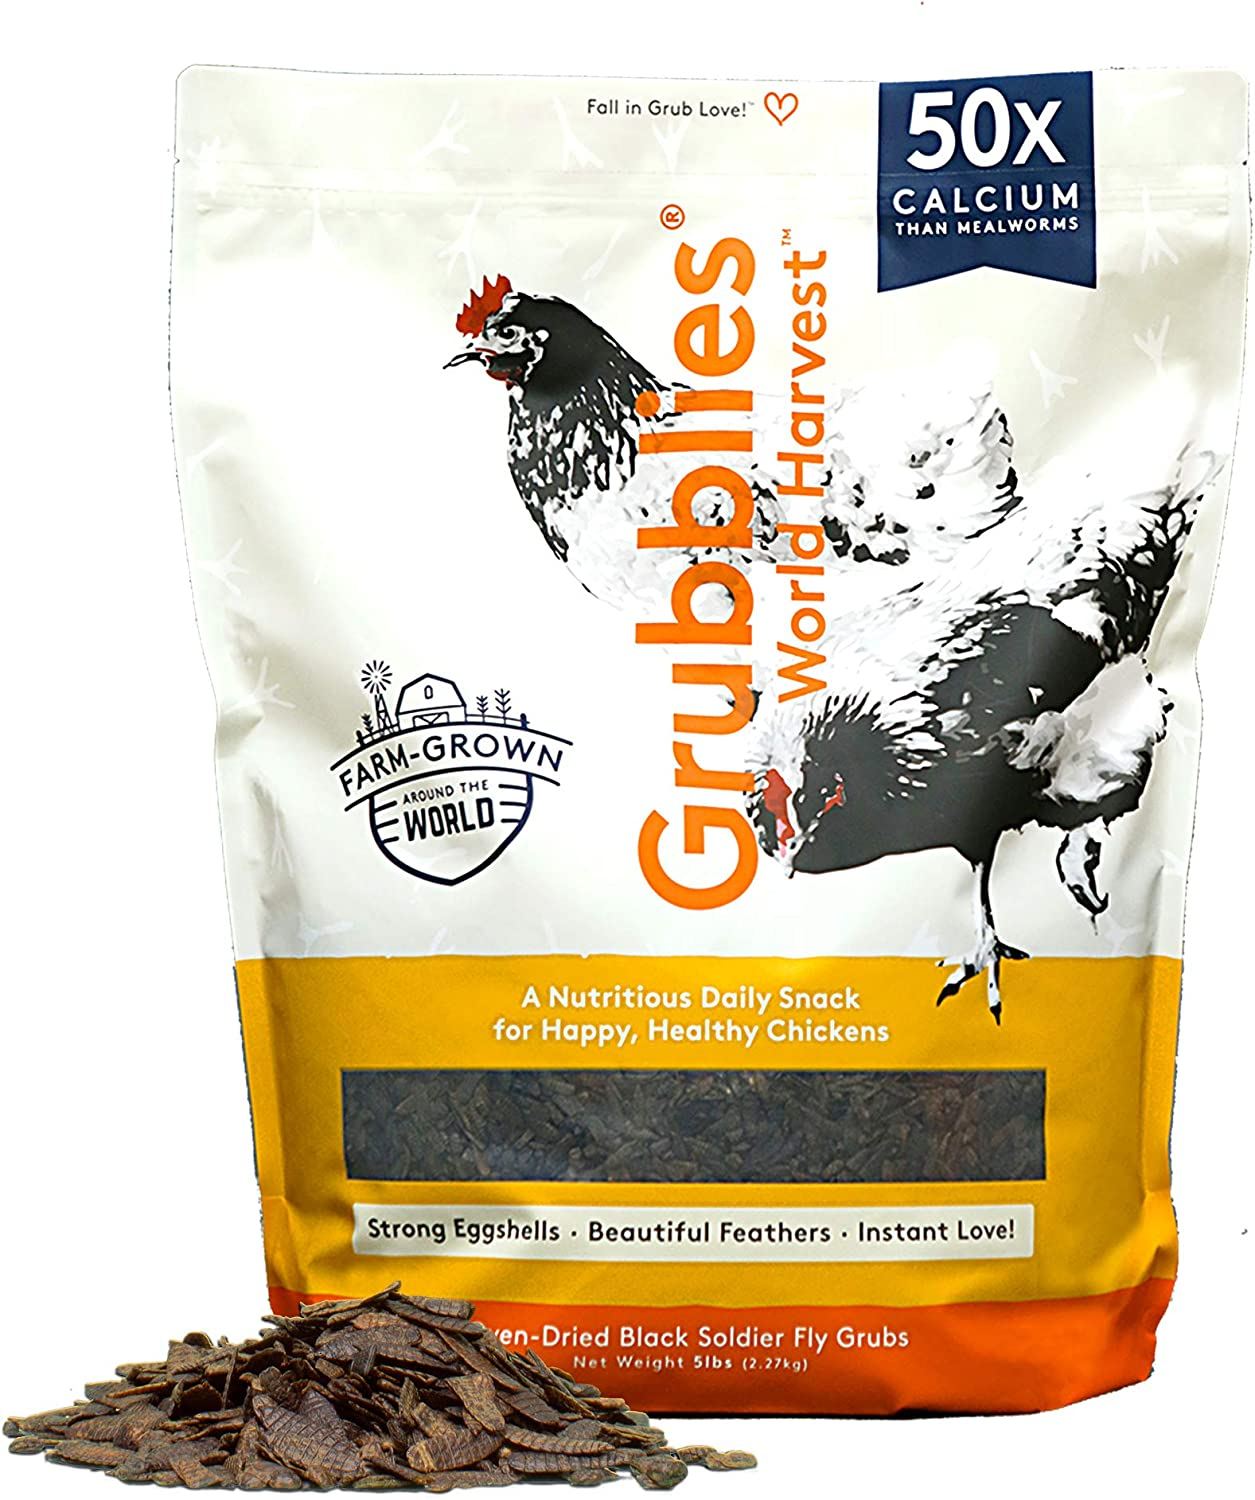 Grubblies World Harvest– Natural Grubs for Chickens - Chicken Feed Supplement with 50x Calcium, Healthier Than Mealworms - Black Soldier Fly Larvae Treats for Hens, Ducks, Birds